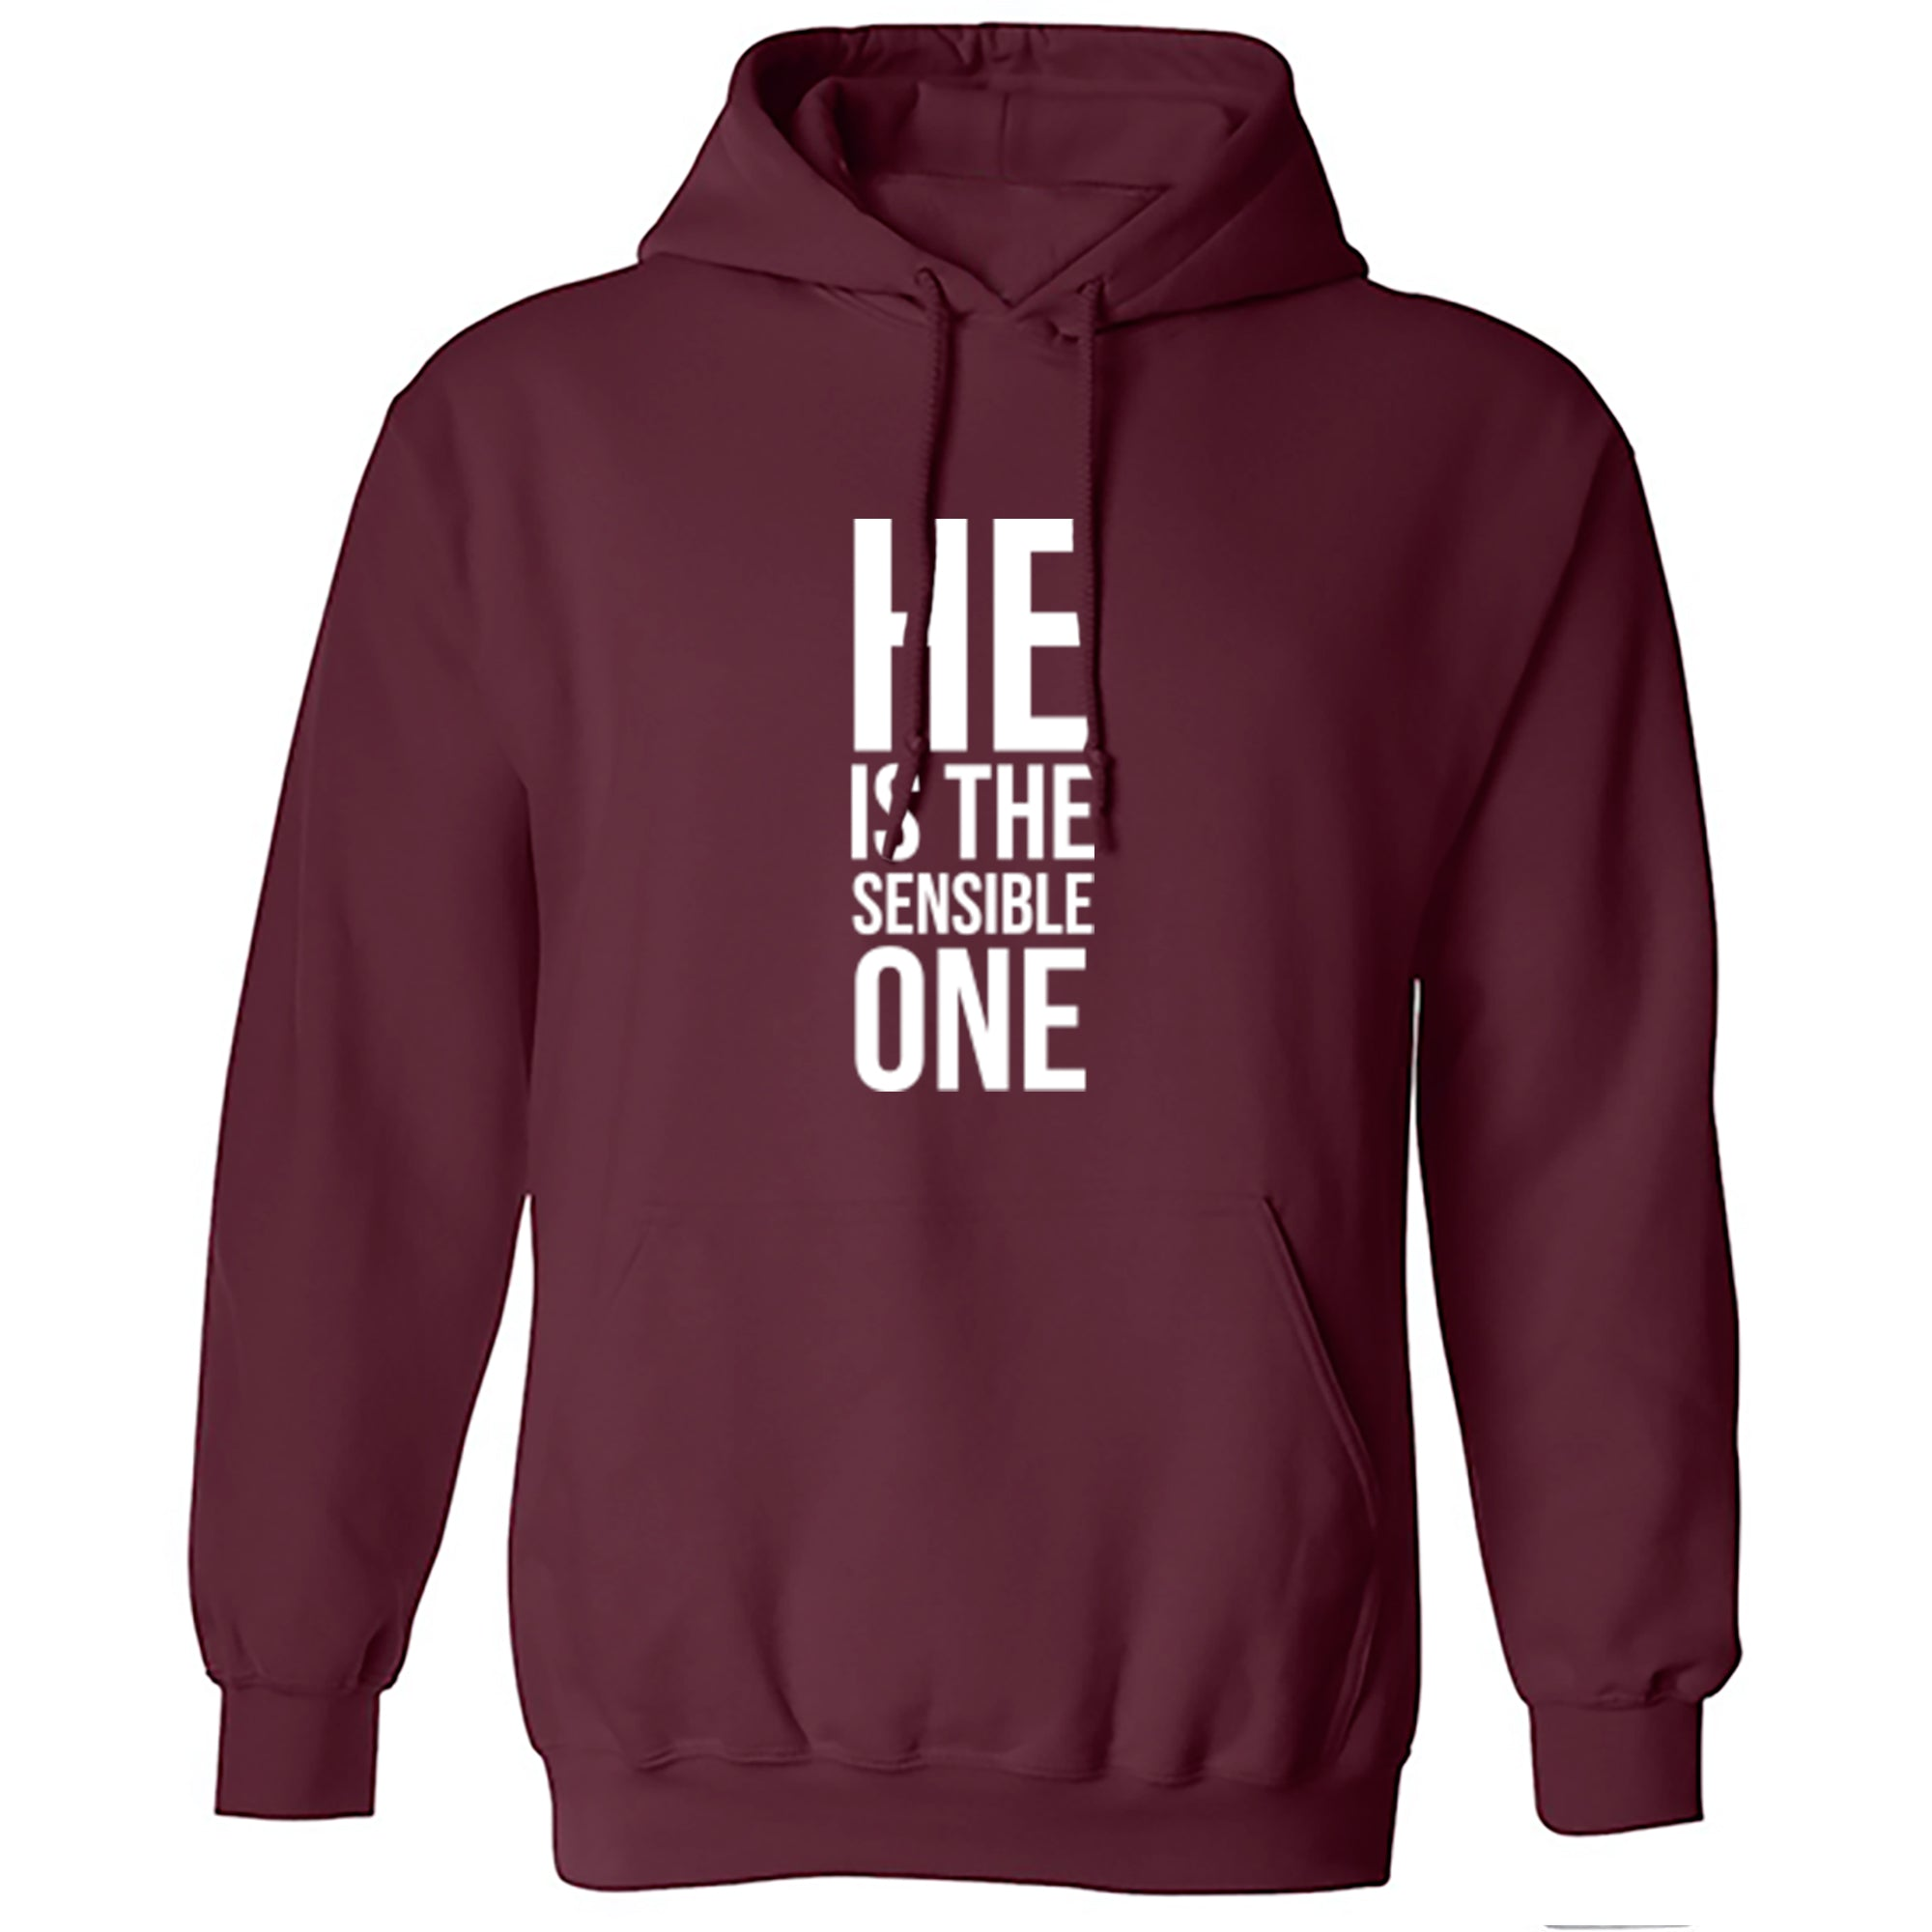 He Is The Sensible One Unisex Hoodie S0340 - Illustrated Identity Ltd.